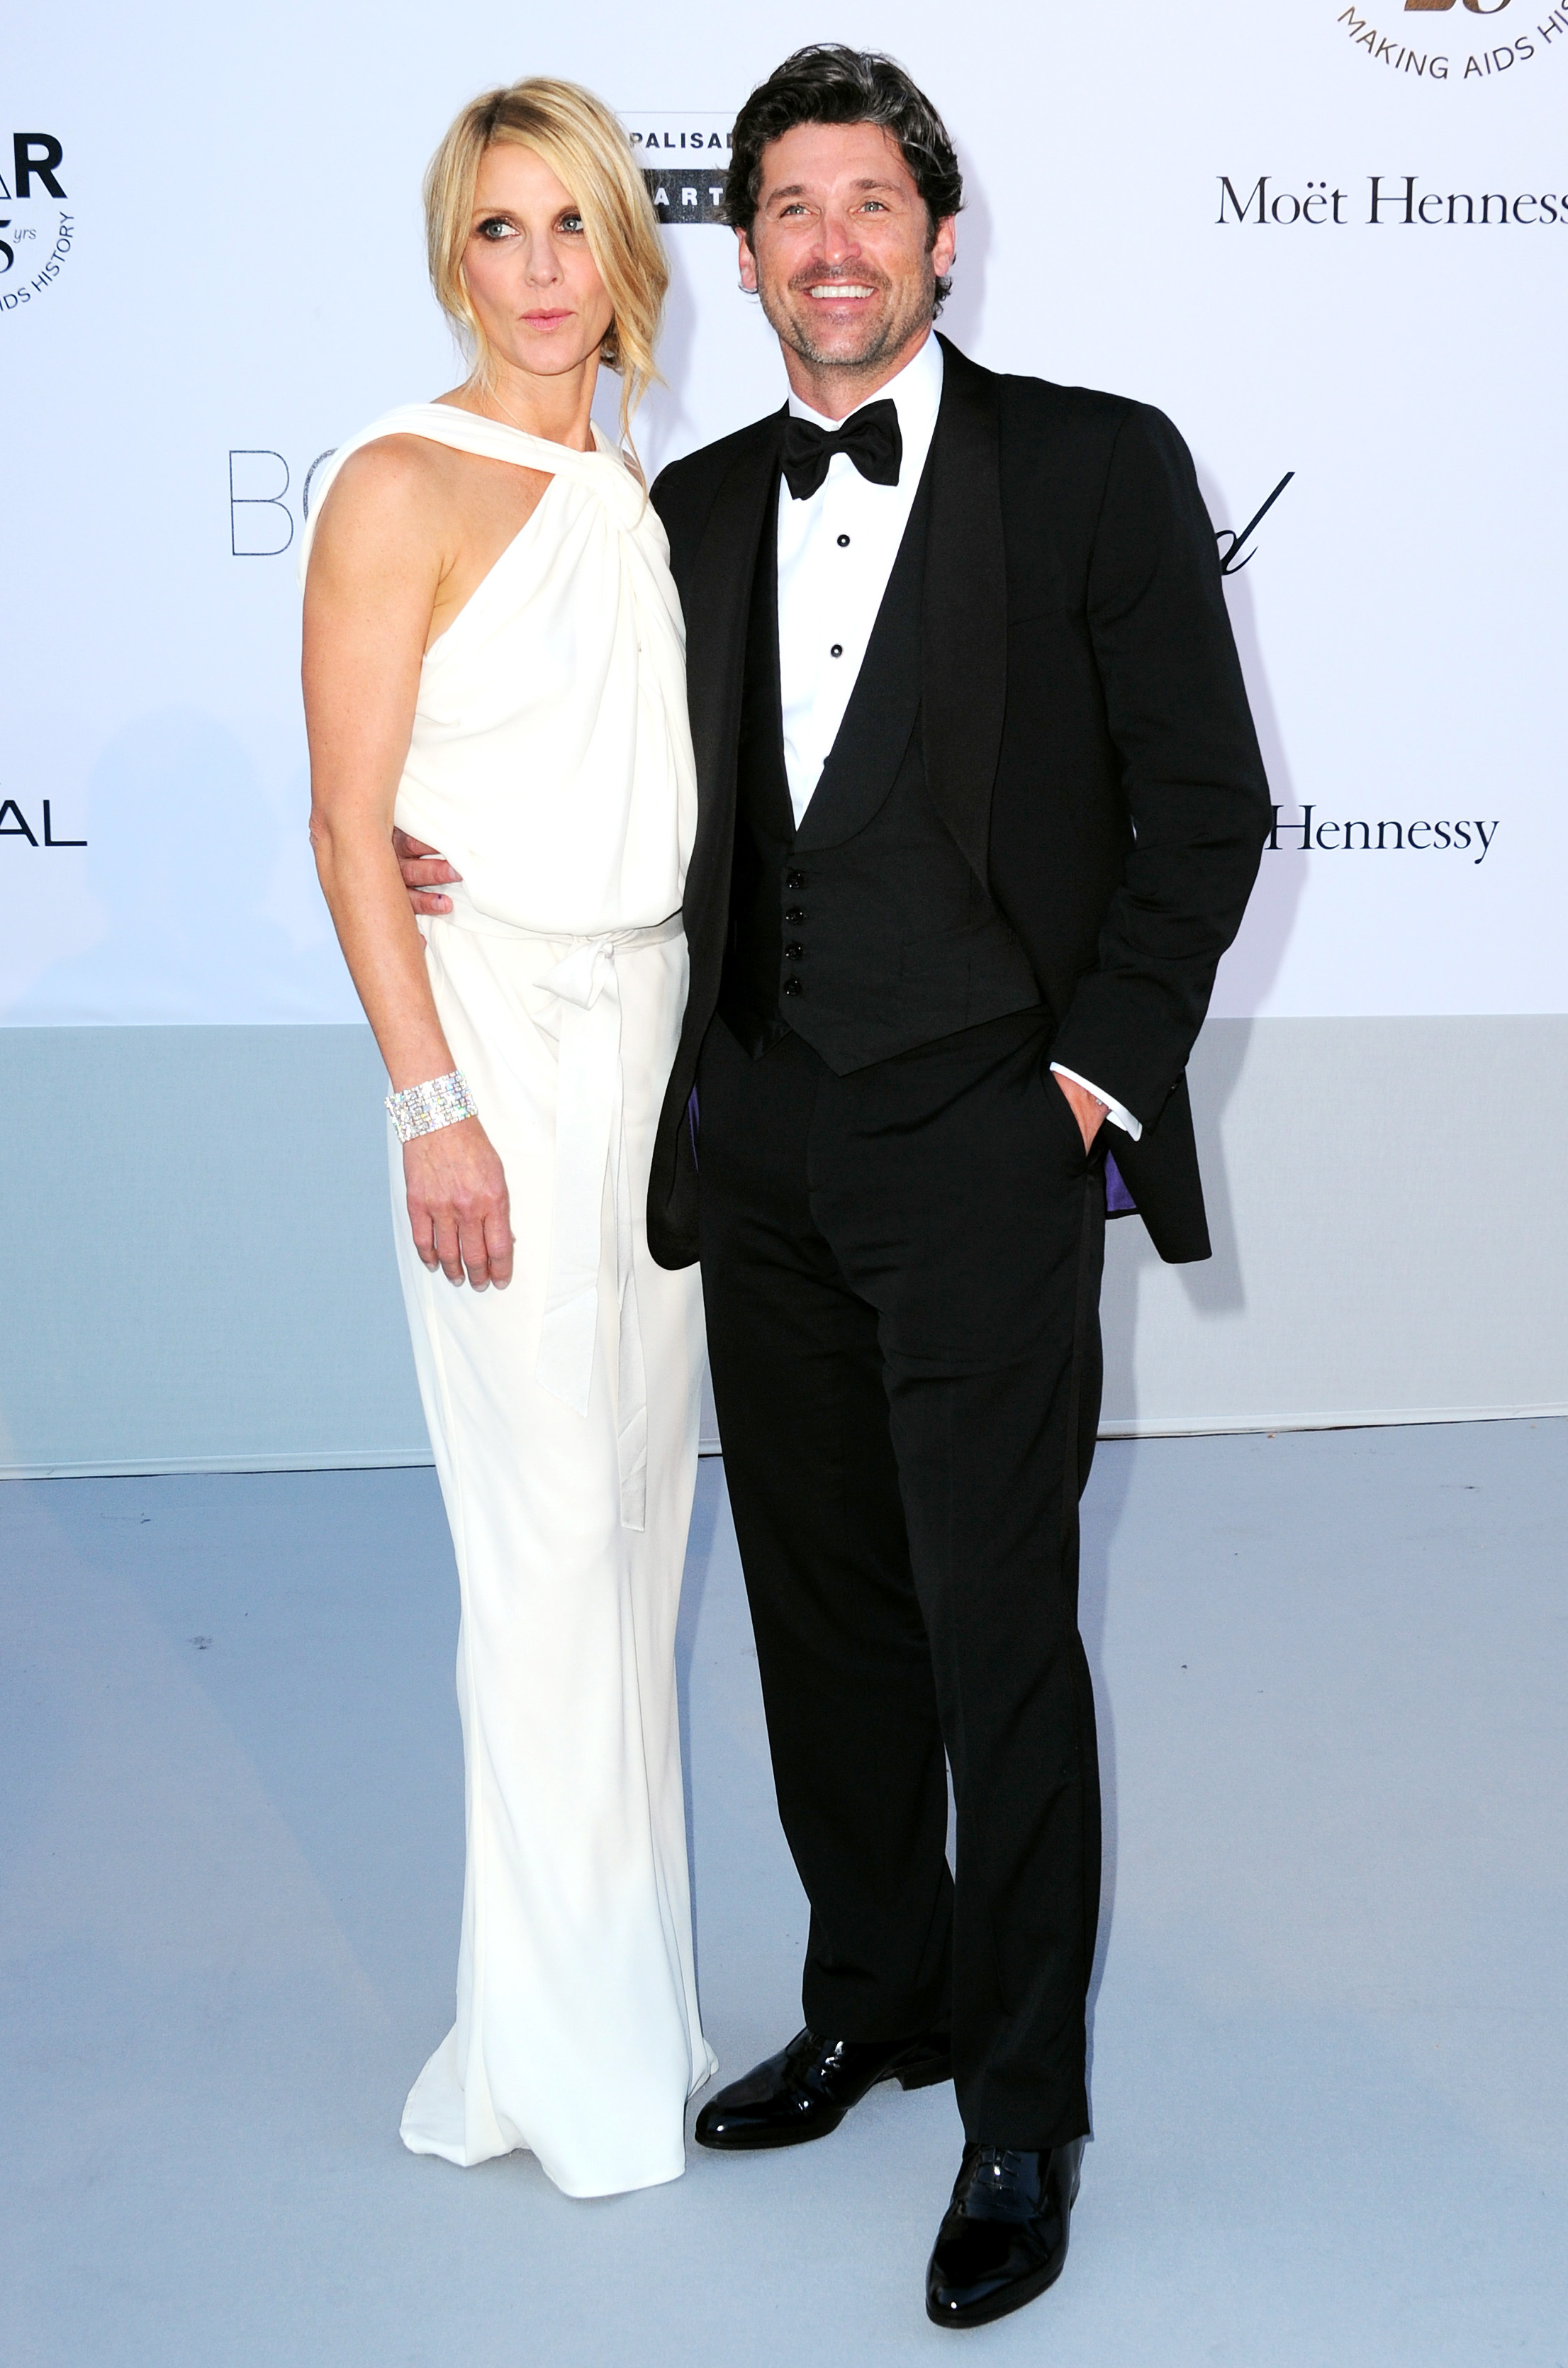 Patrick Dempsey's wife sold the house she bought during split